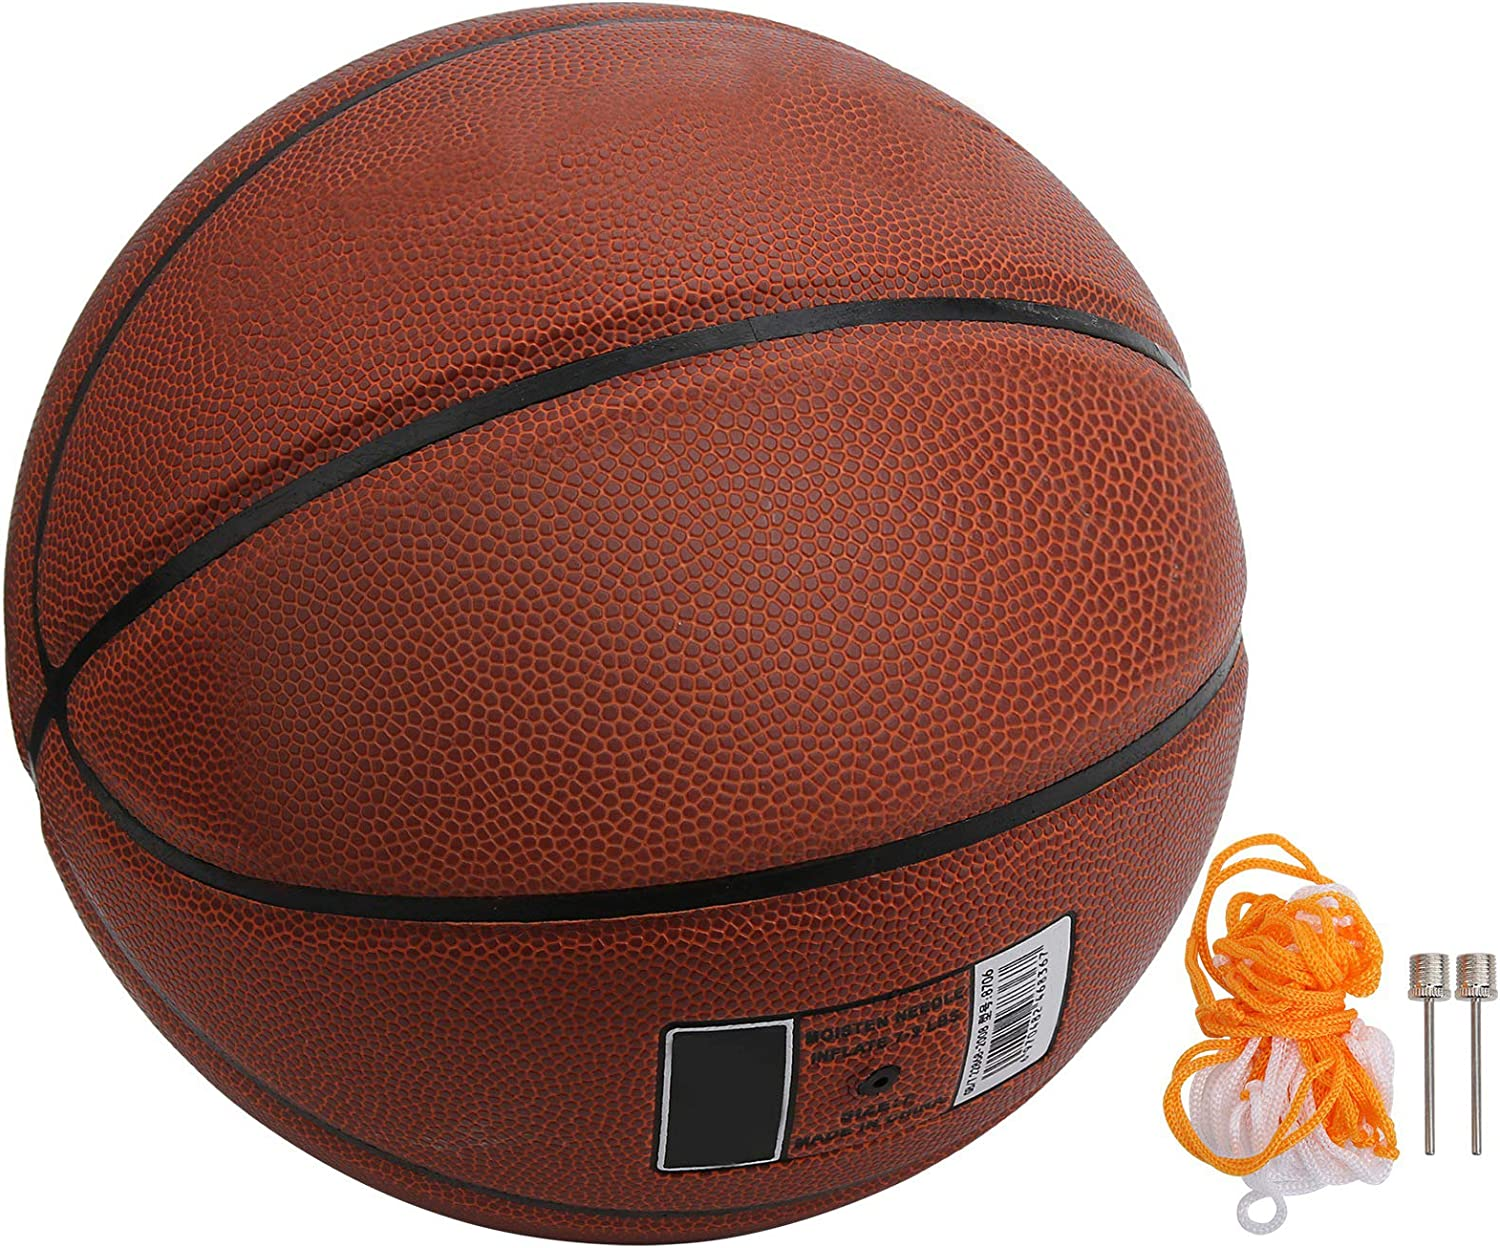 Dilwe Popular popular Size 7 Basketball Rubber Indoor for Manufacturer direct delivery Cement Our